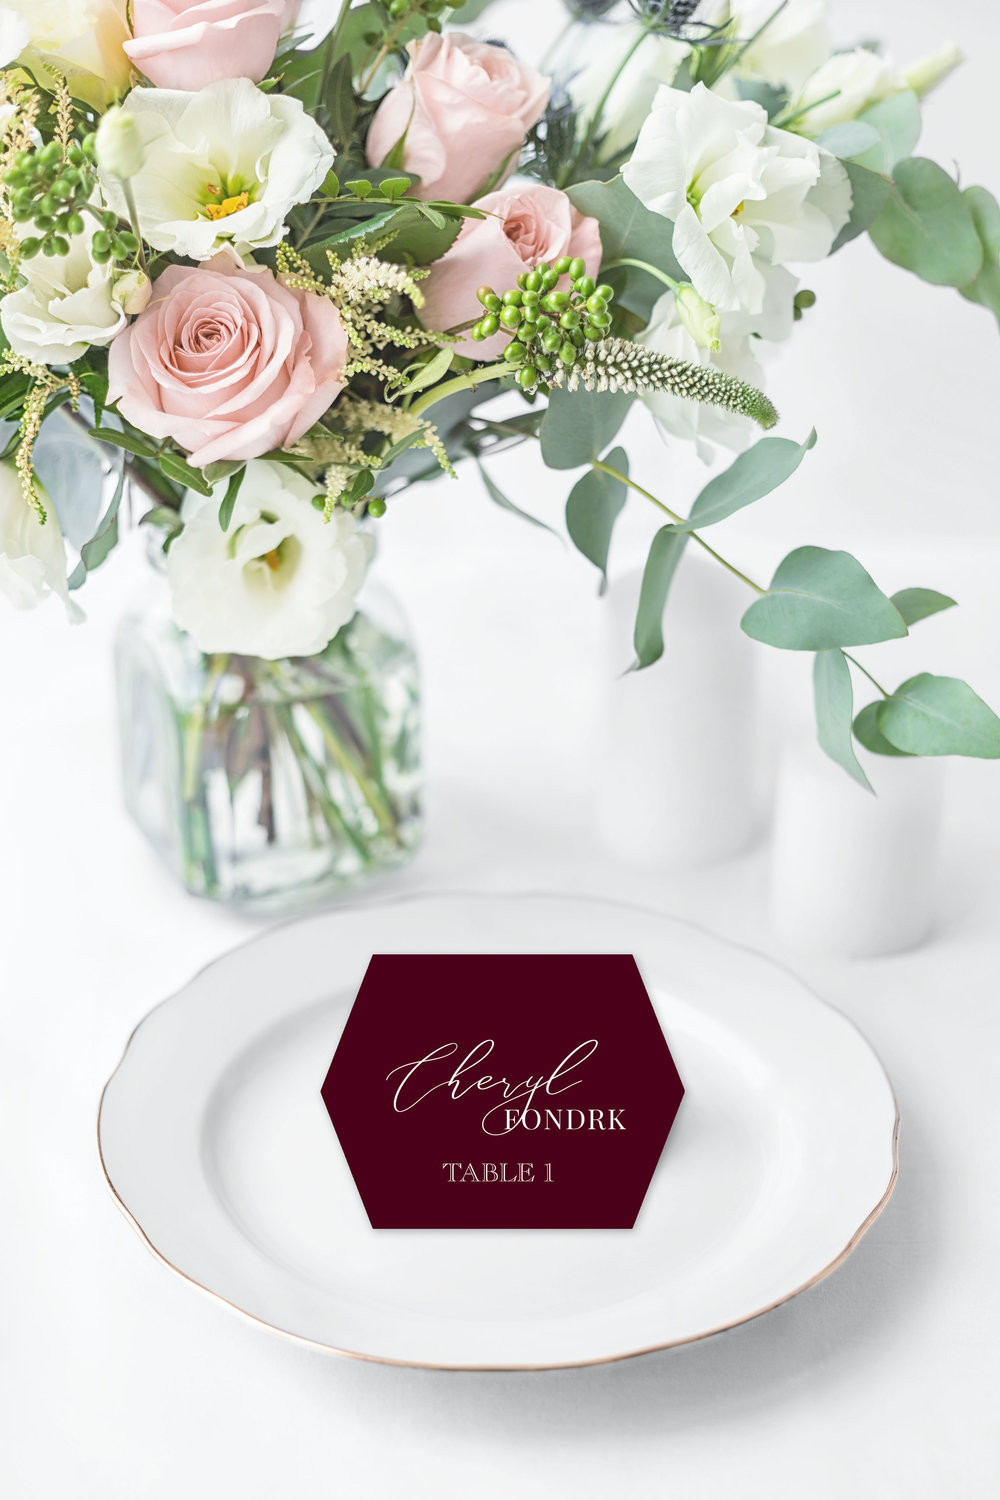 WHITE INK ON BURGUNDY HEXAGON PLACE CARD.jpg